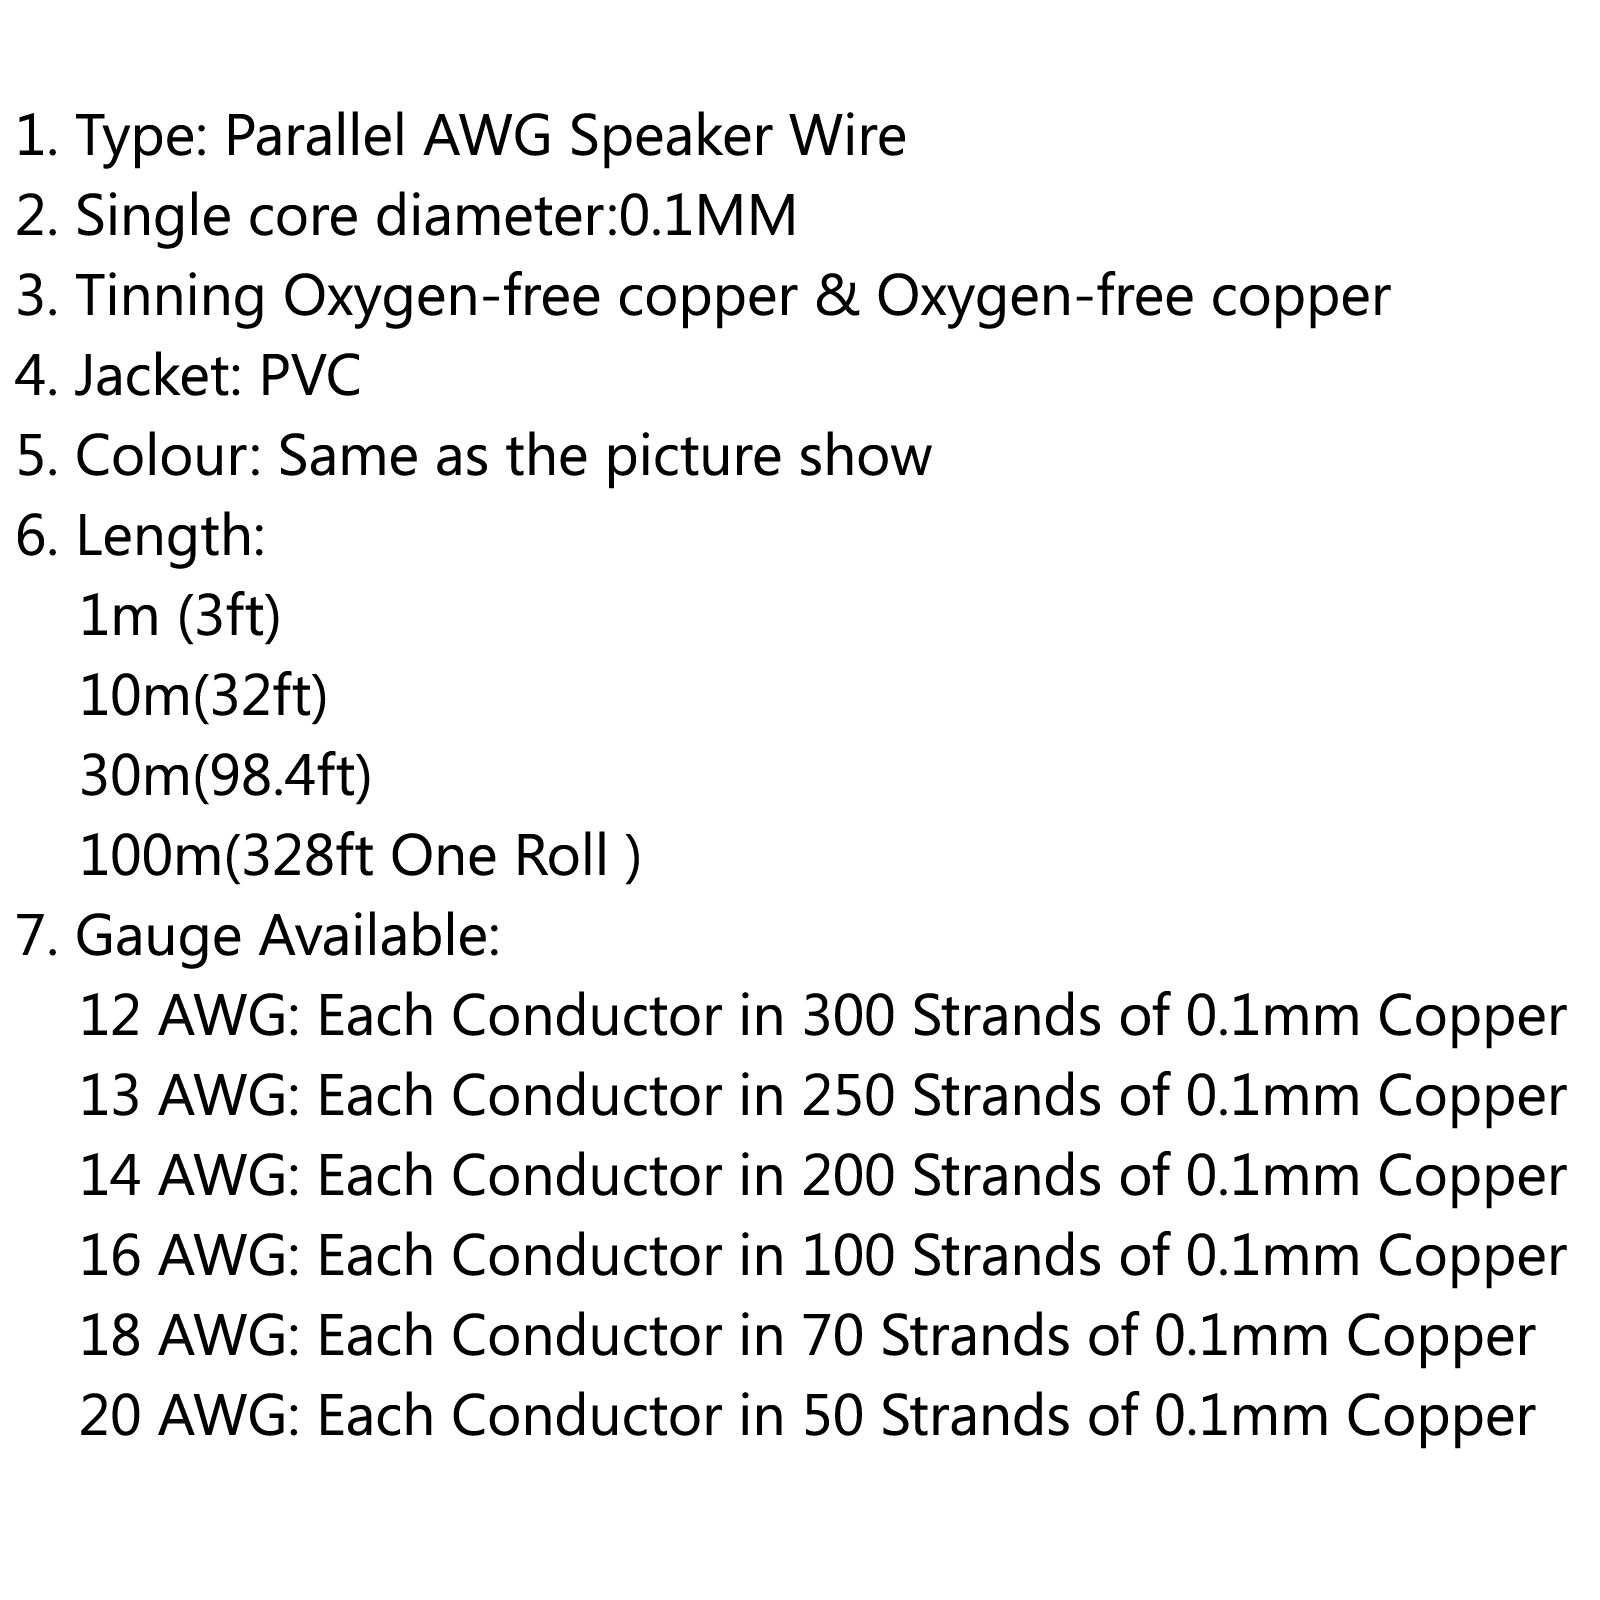 Car home audio speaker wire cable ofc gold silver 12 13 14 16 18 20 shape same as the picture show 1 type parallel awg speaker wire 2 single core diameter01mm 3 tinning oxygen free copper oxygen free copper keyboard keysfo Images